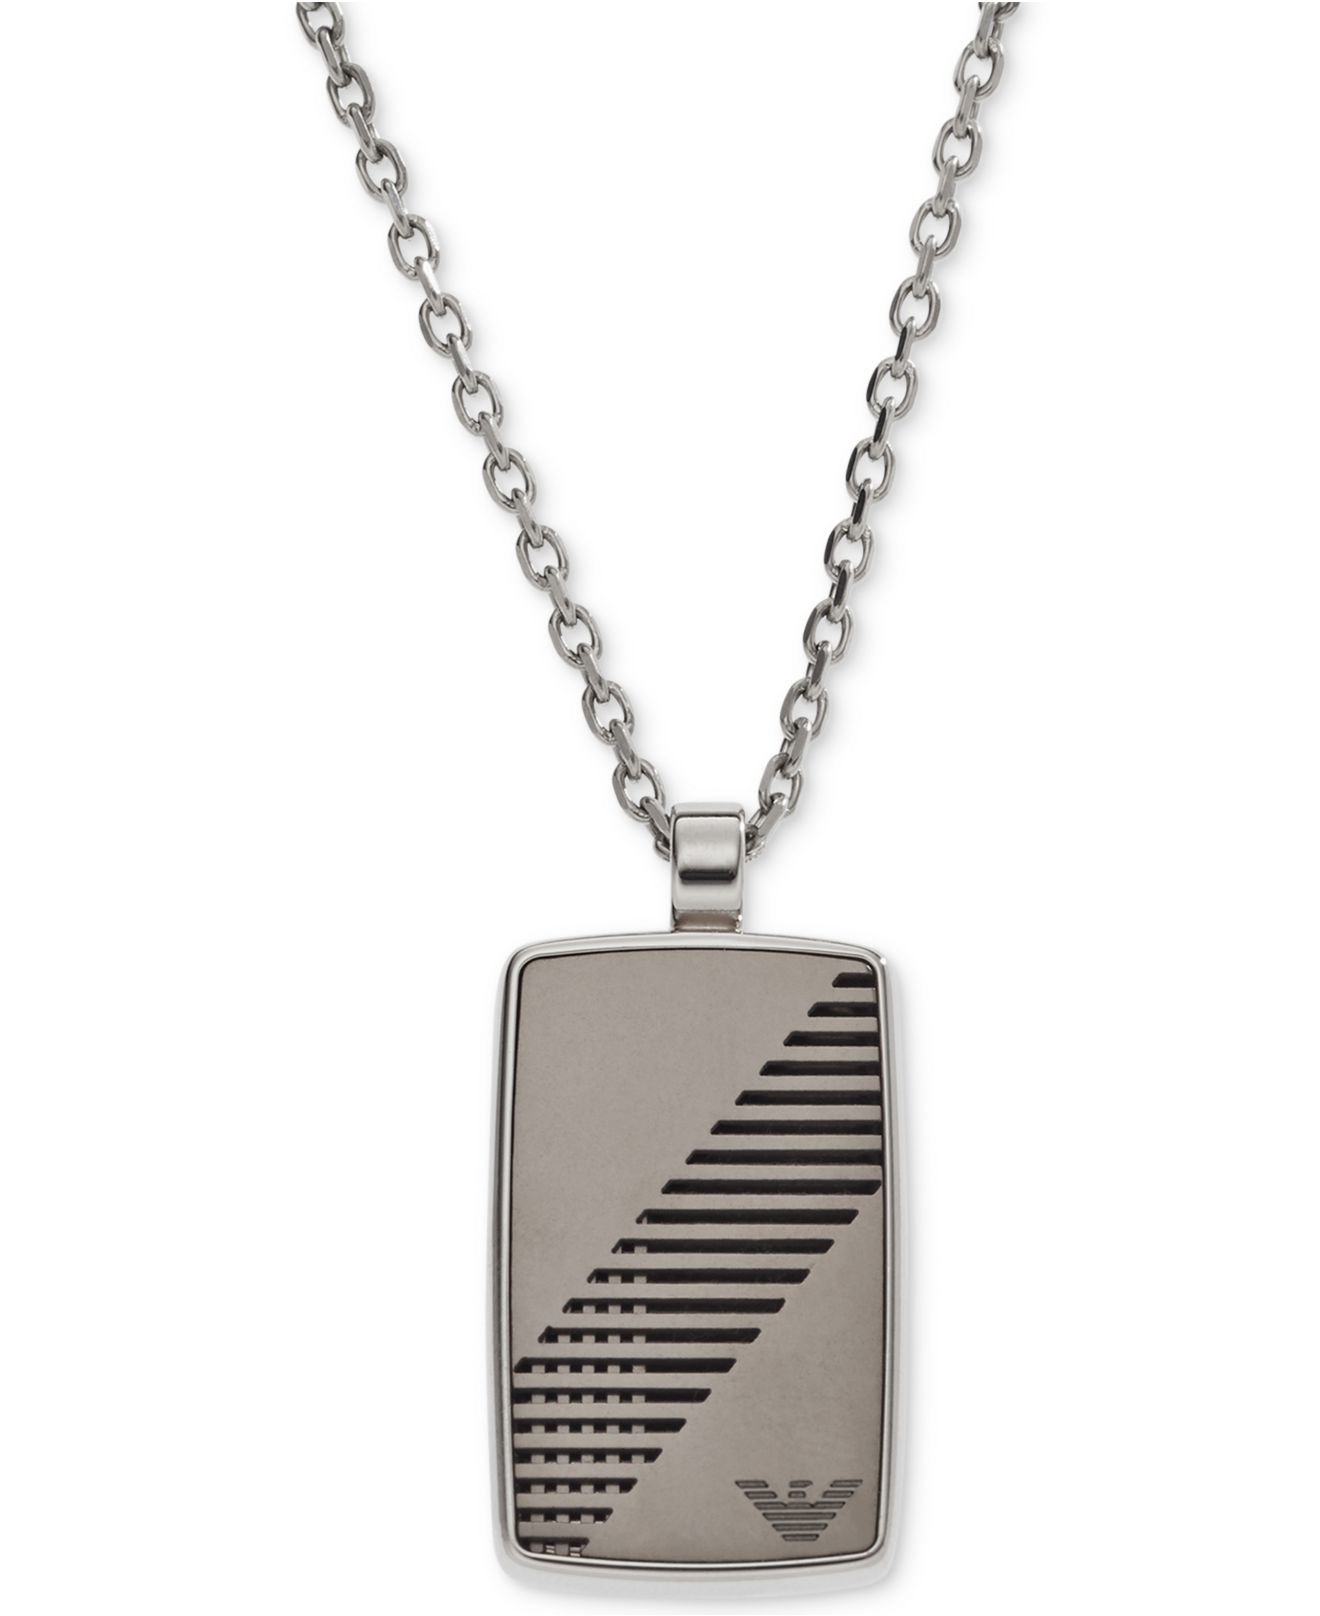 Emporio Armani Iconic Stainless Steel Rounded Eagle Logo Dog Tag Necklace EGS2027040 in Gift Box